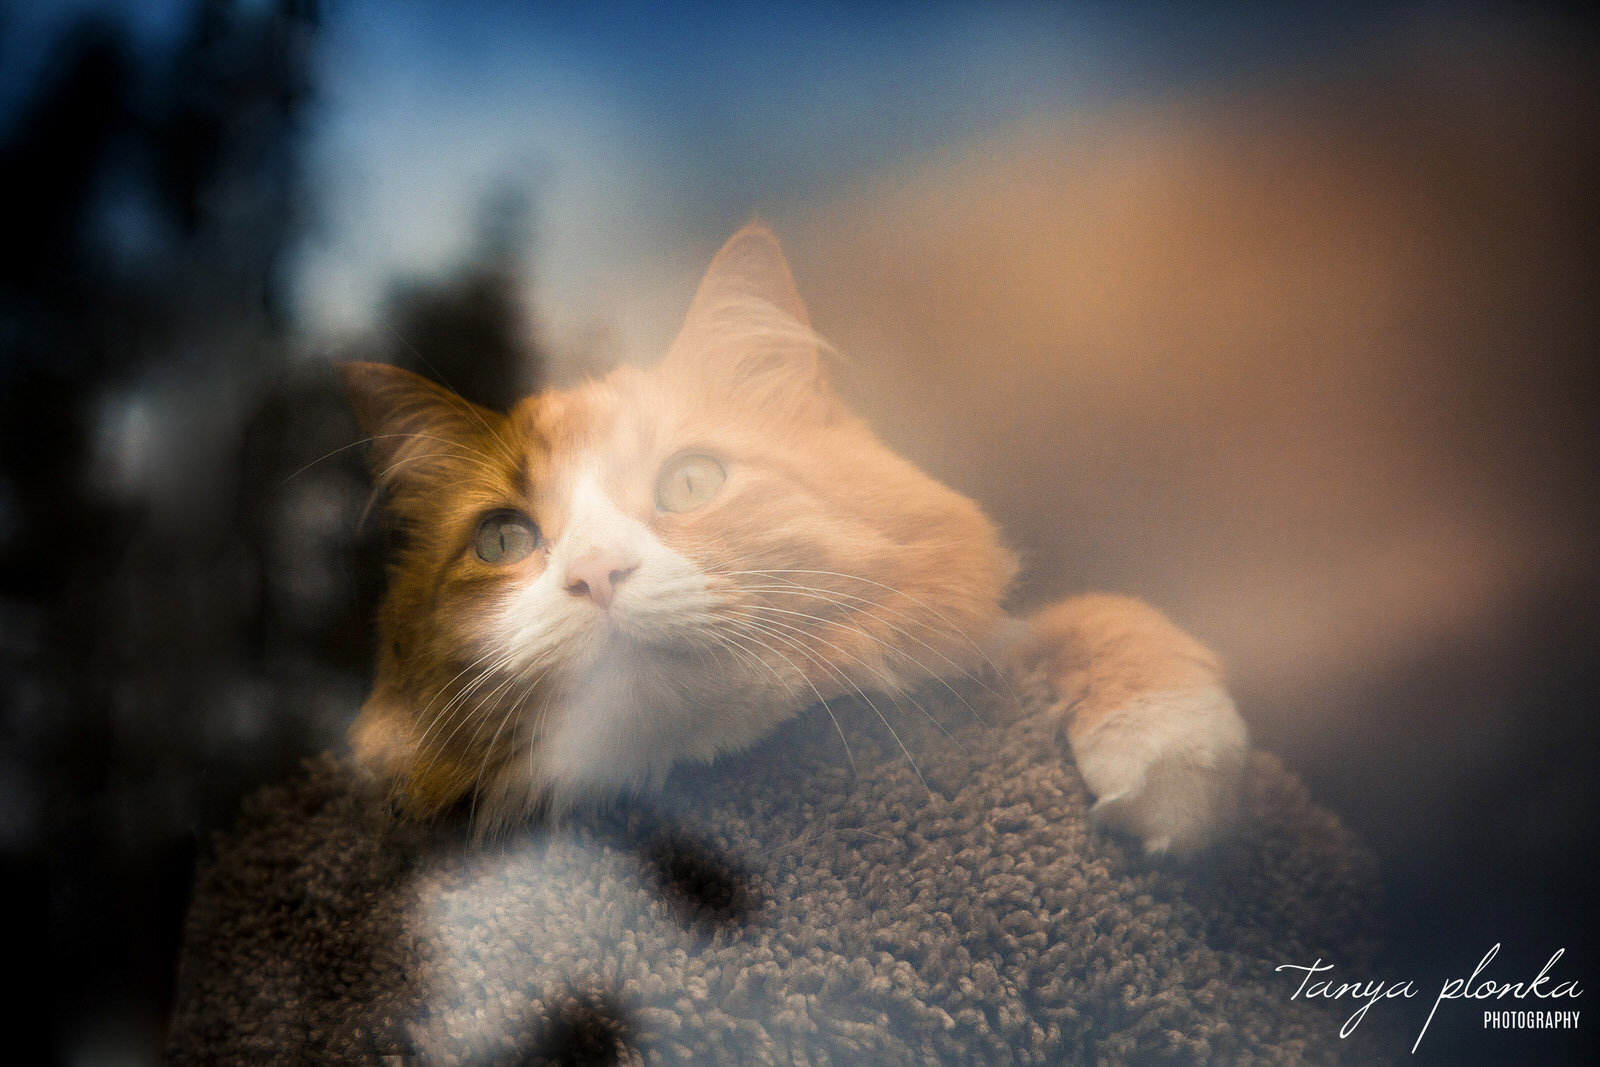 photo taken through window with blue and orange reflection of orange cat dreamily staring out